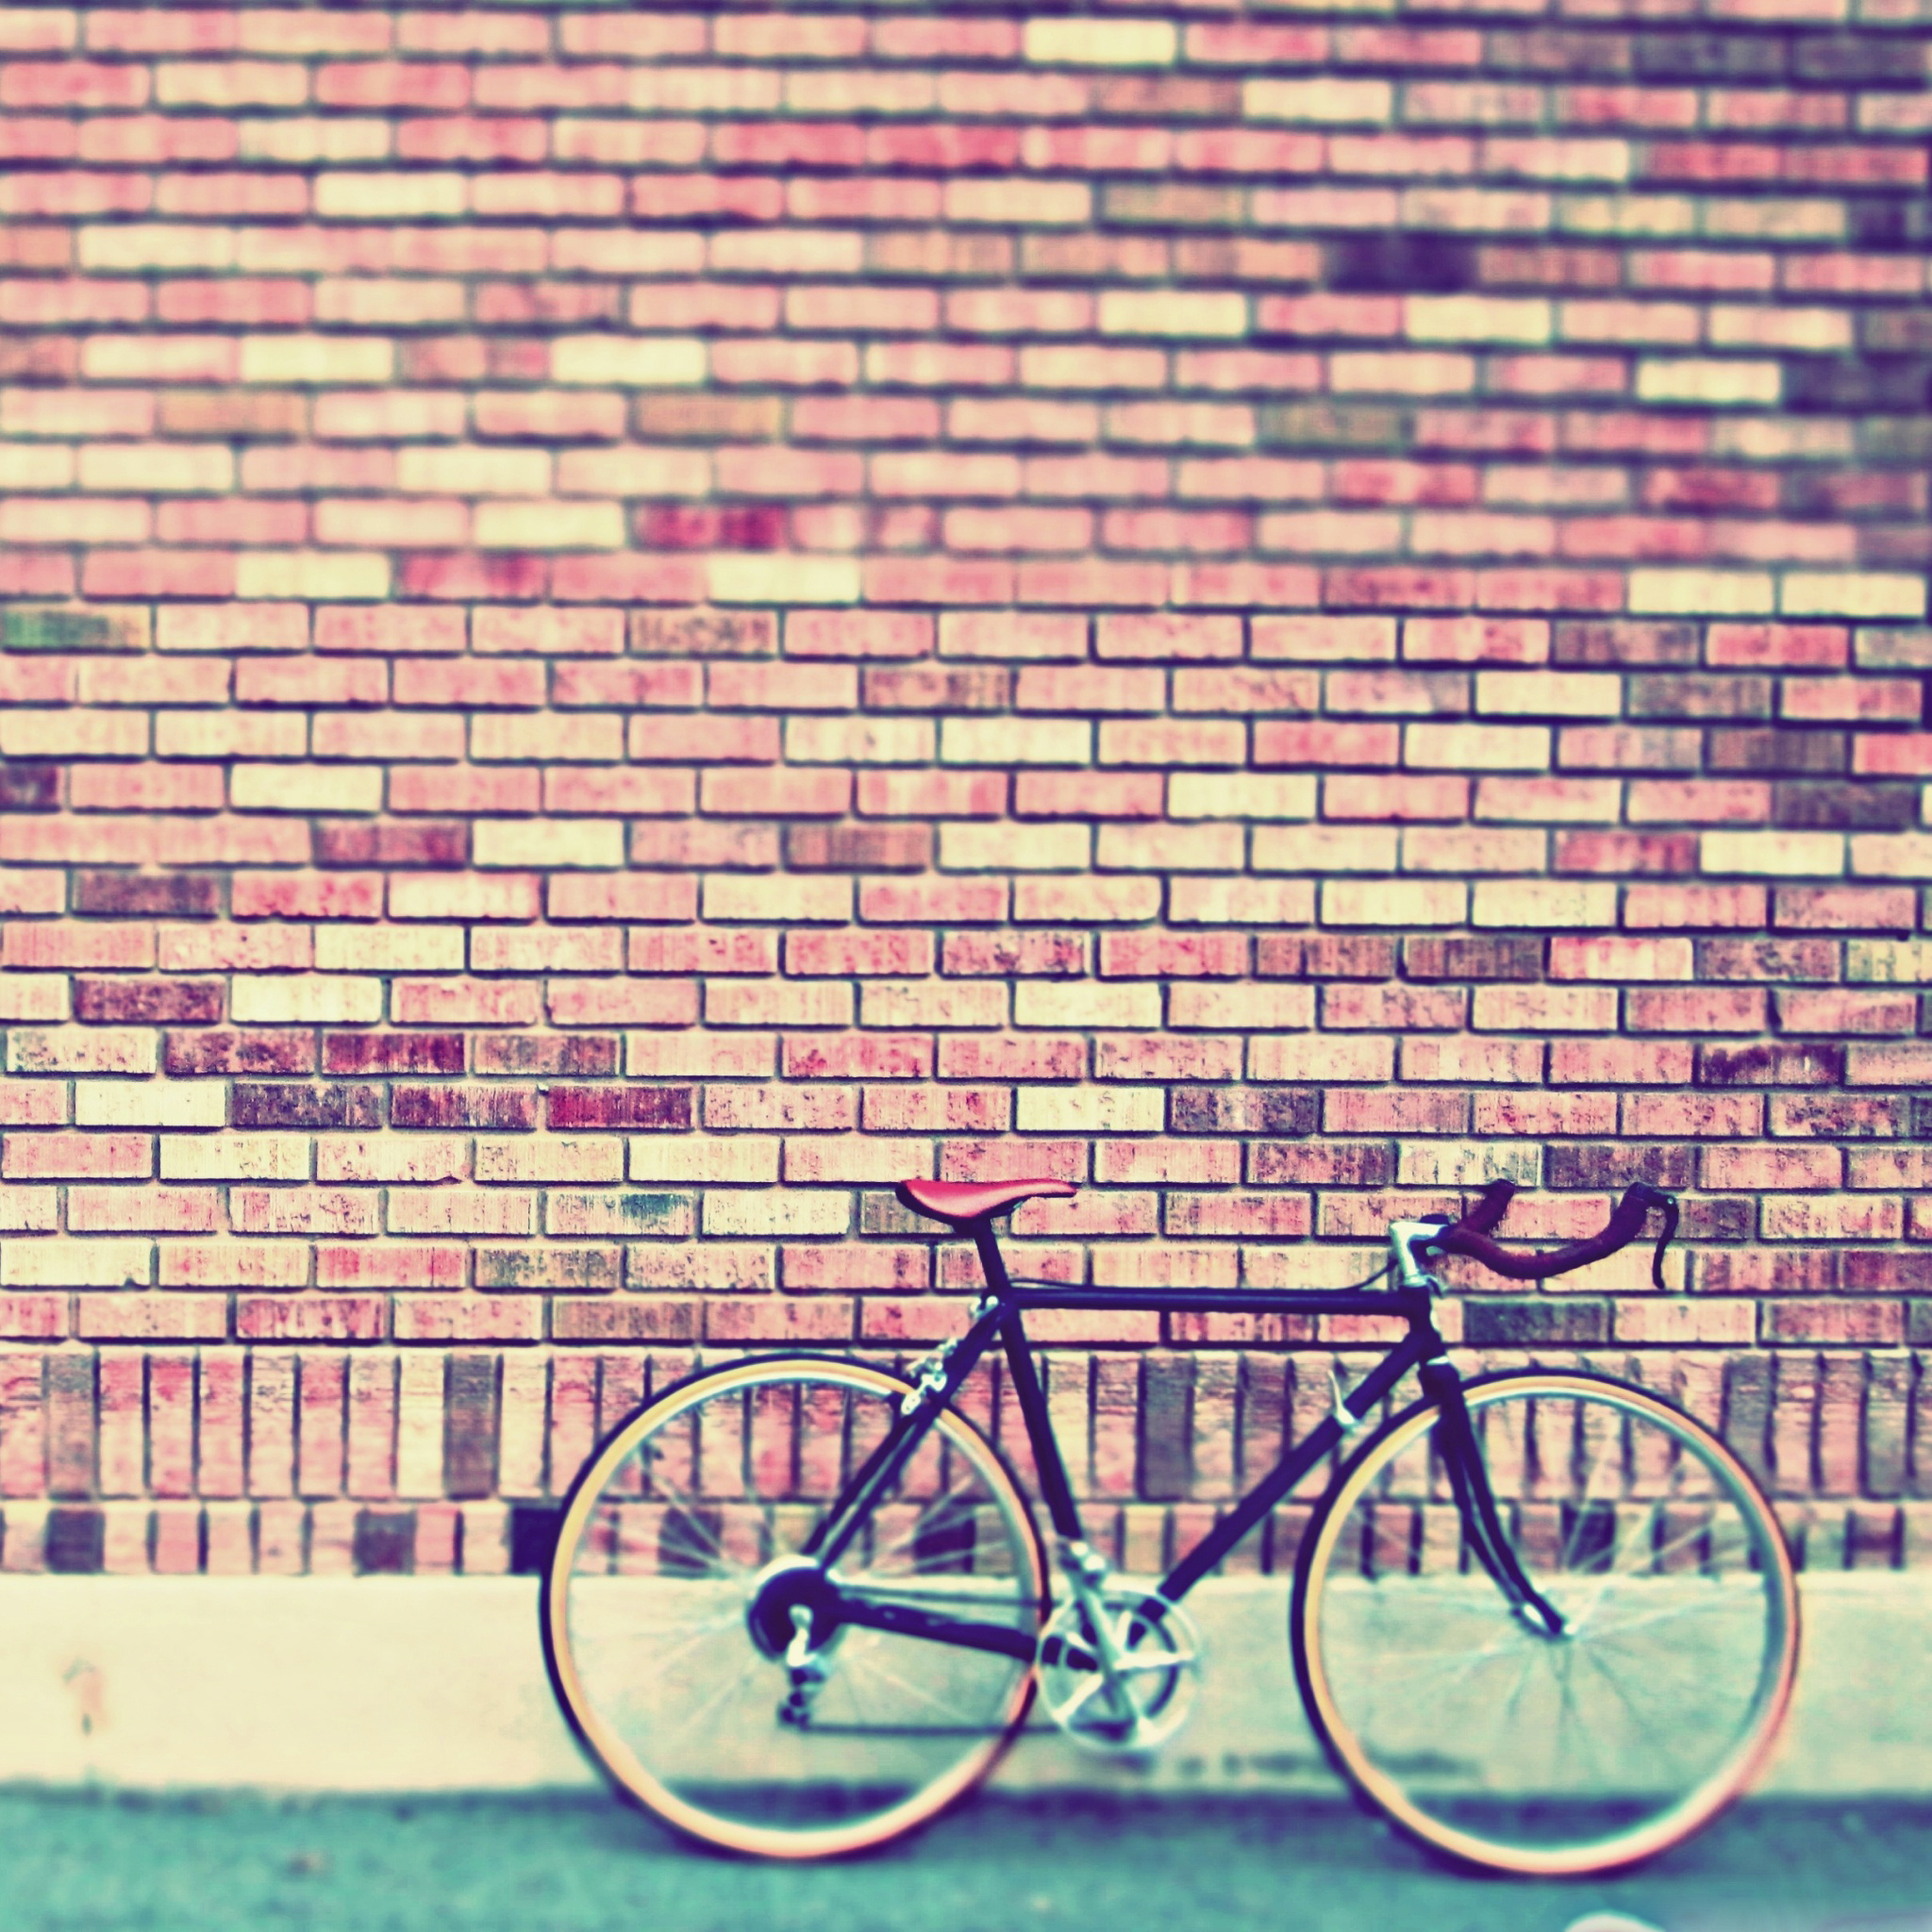 Vintage-Bike3Wallpapers-iPad-Retina